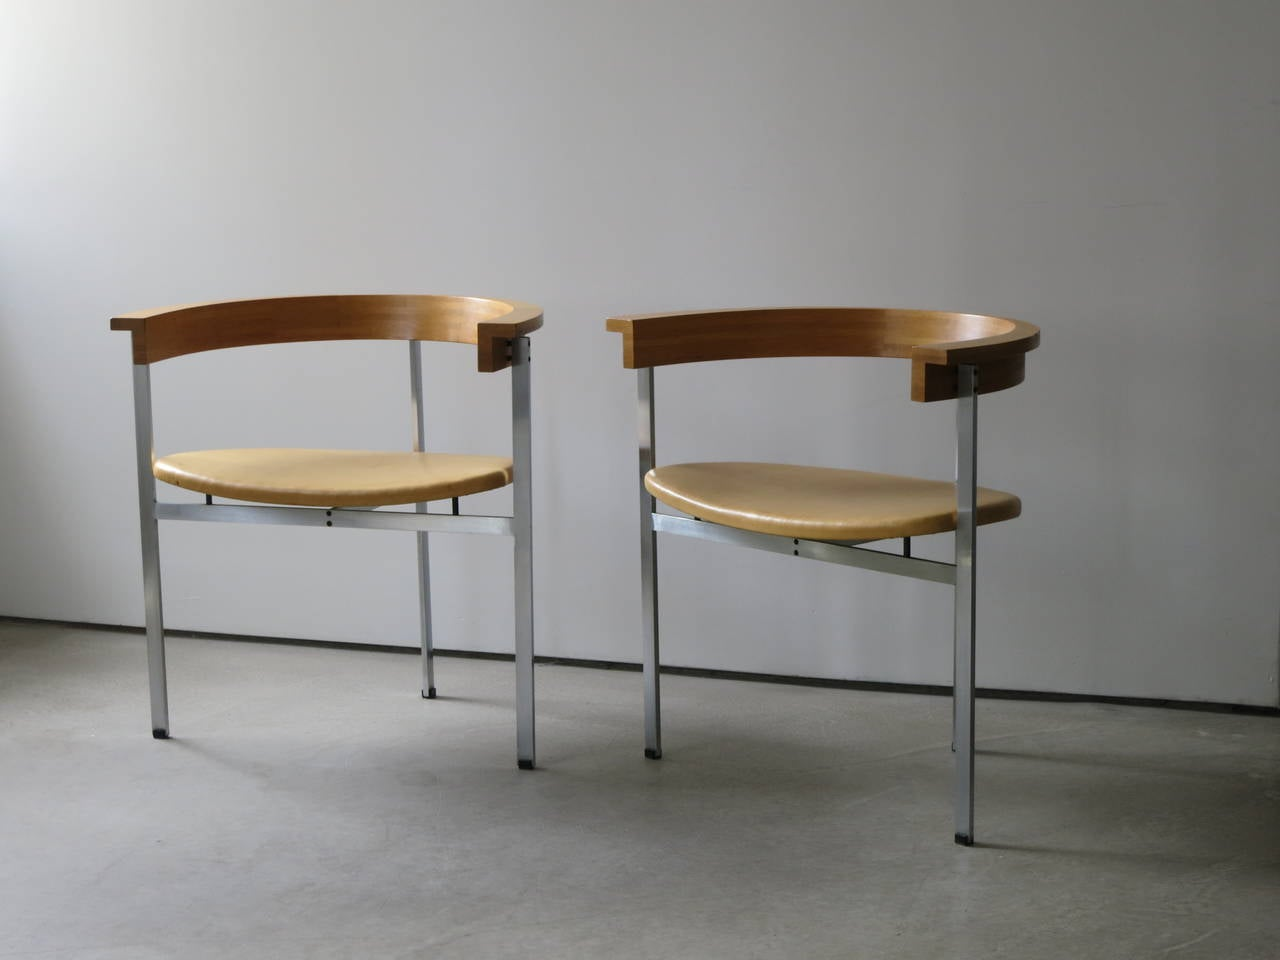 Pair of PK-11 Armchairs by Poul Kjærholm, made by E. Kold Christensen. Kjærholm designed a total of seven three-legged chairs over the course of his career. This is his most famous. This iconic chair, designed in 1957, is acclaimed for the superb